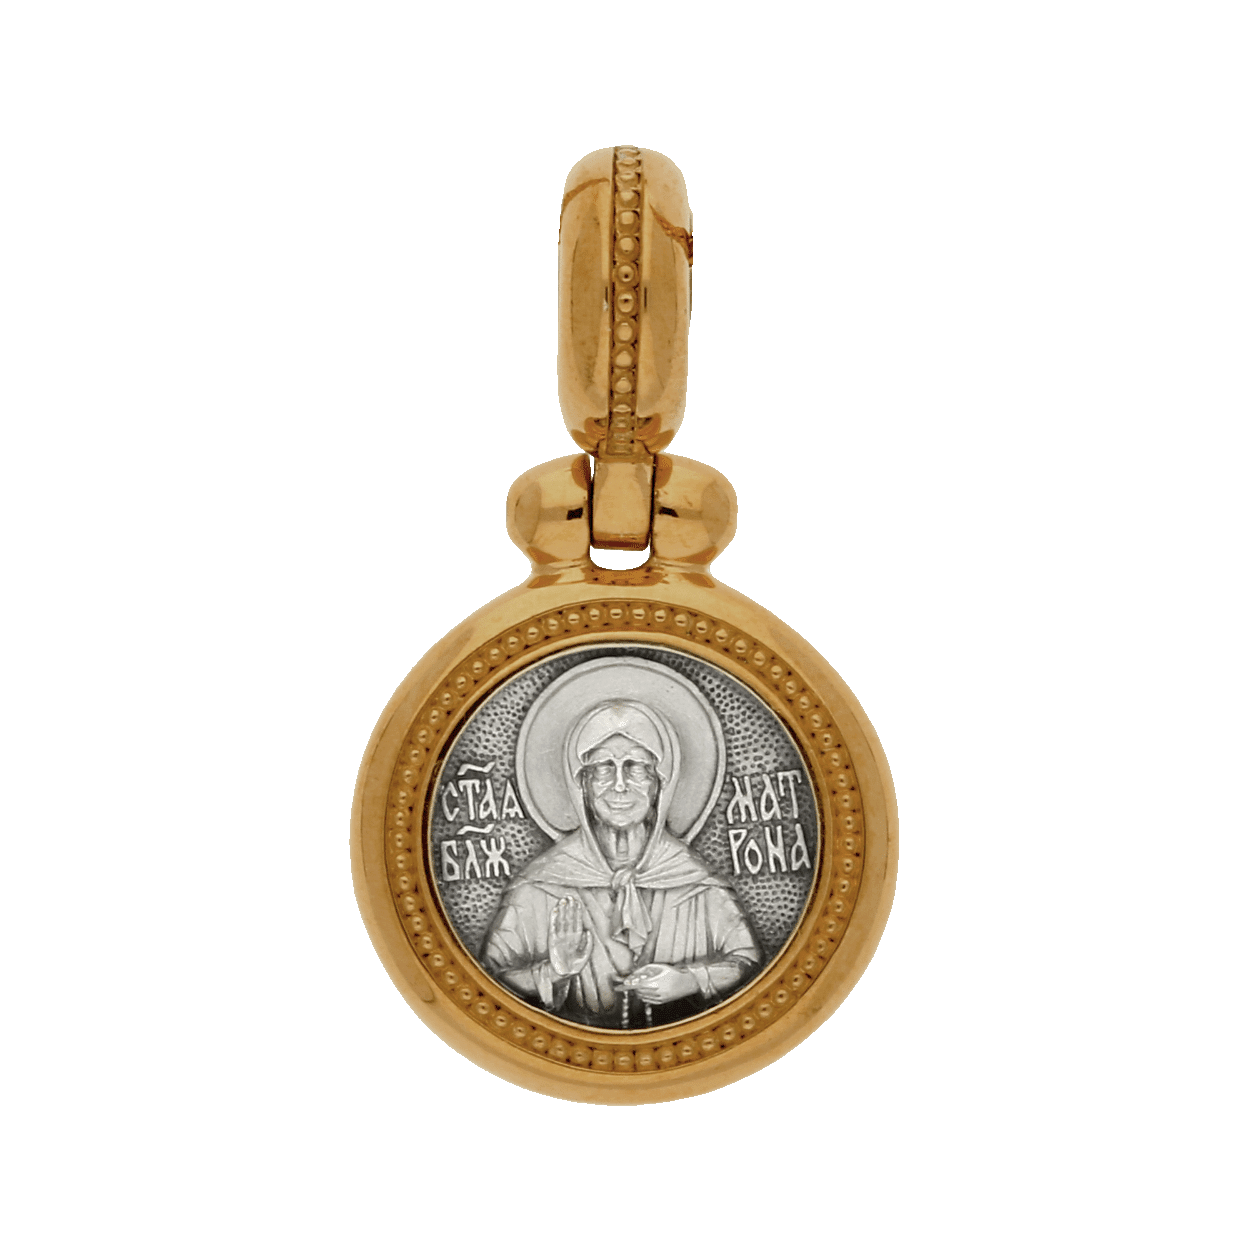 IS116_A-Russian-Orthodox-silver-icon-medal-pendant-MATRONA-THE-BLESSED-ELDRESS-OF-MOSCOW-Master-Jeweler-Fedorov (1)-min